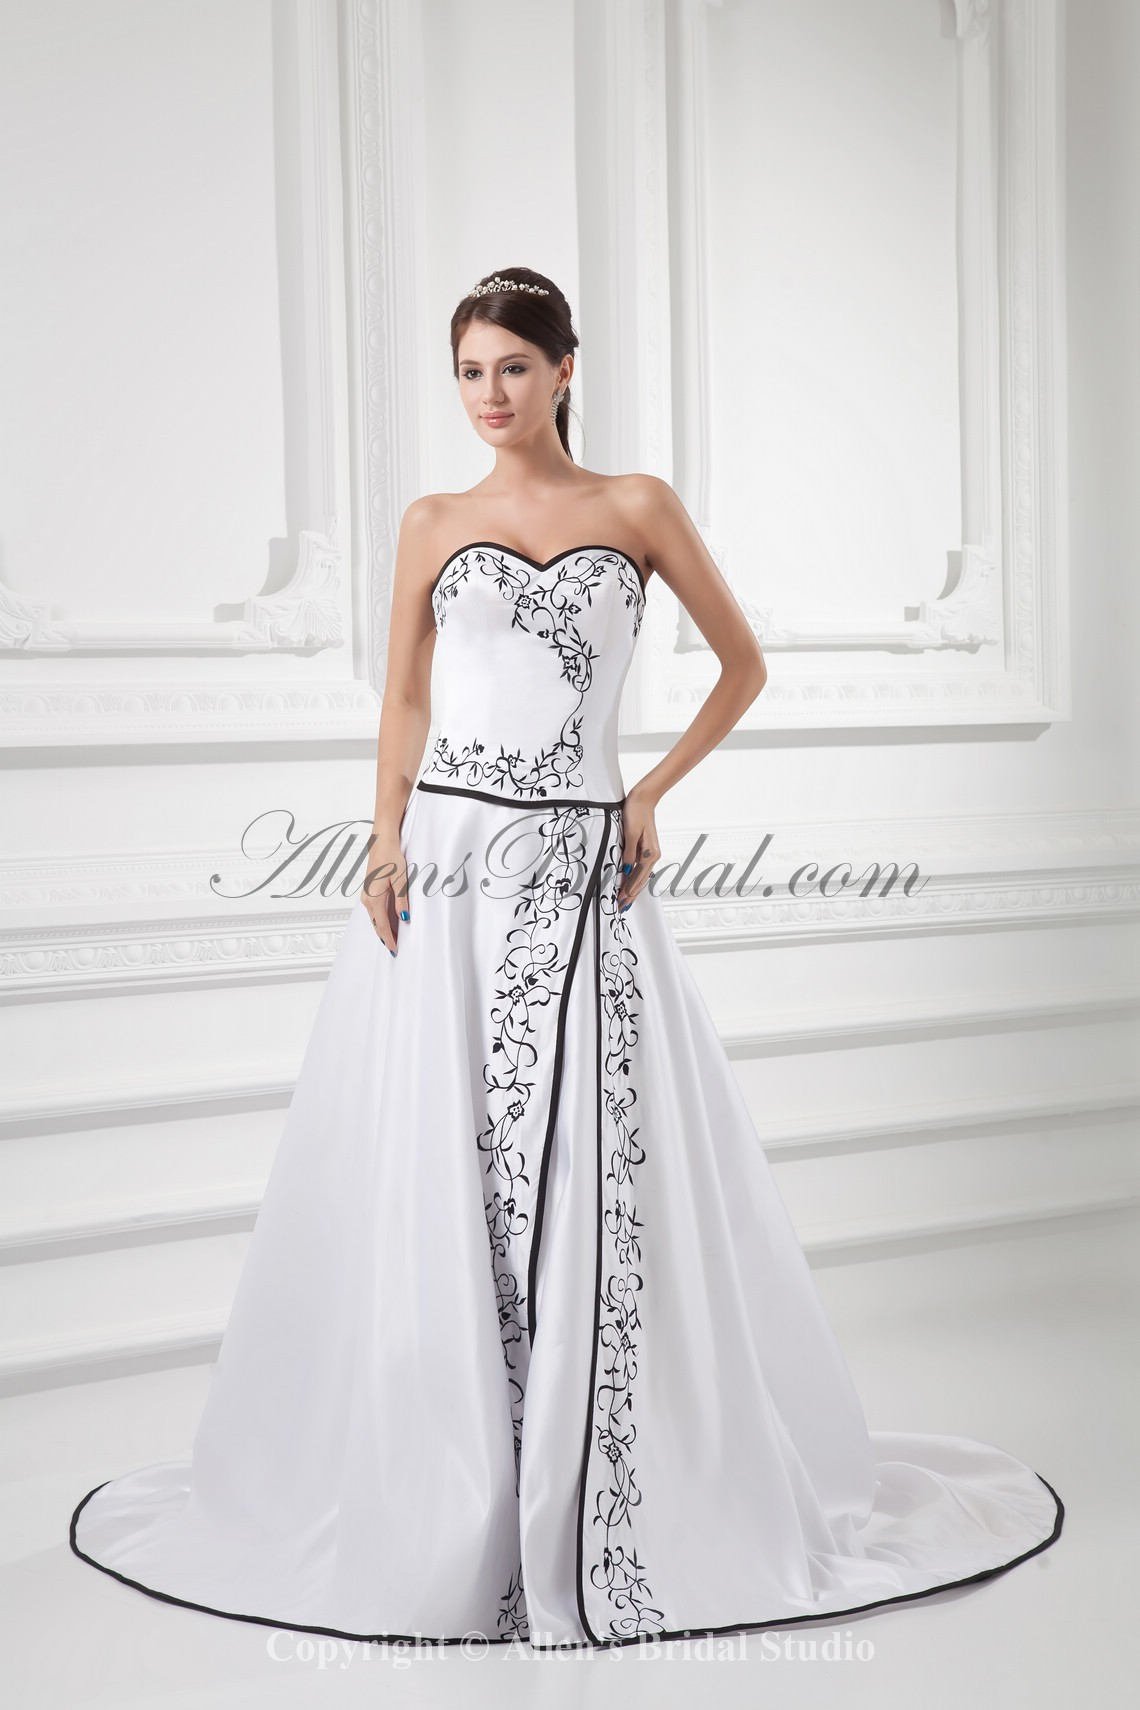 /988-7917/satin-sweetheart-neckline-a-line-sweep-train-embroidered-wedding-dress.jpg